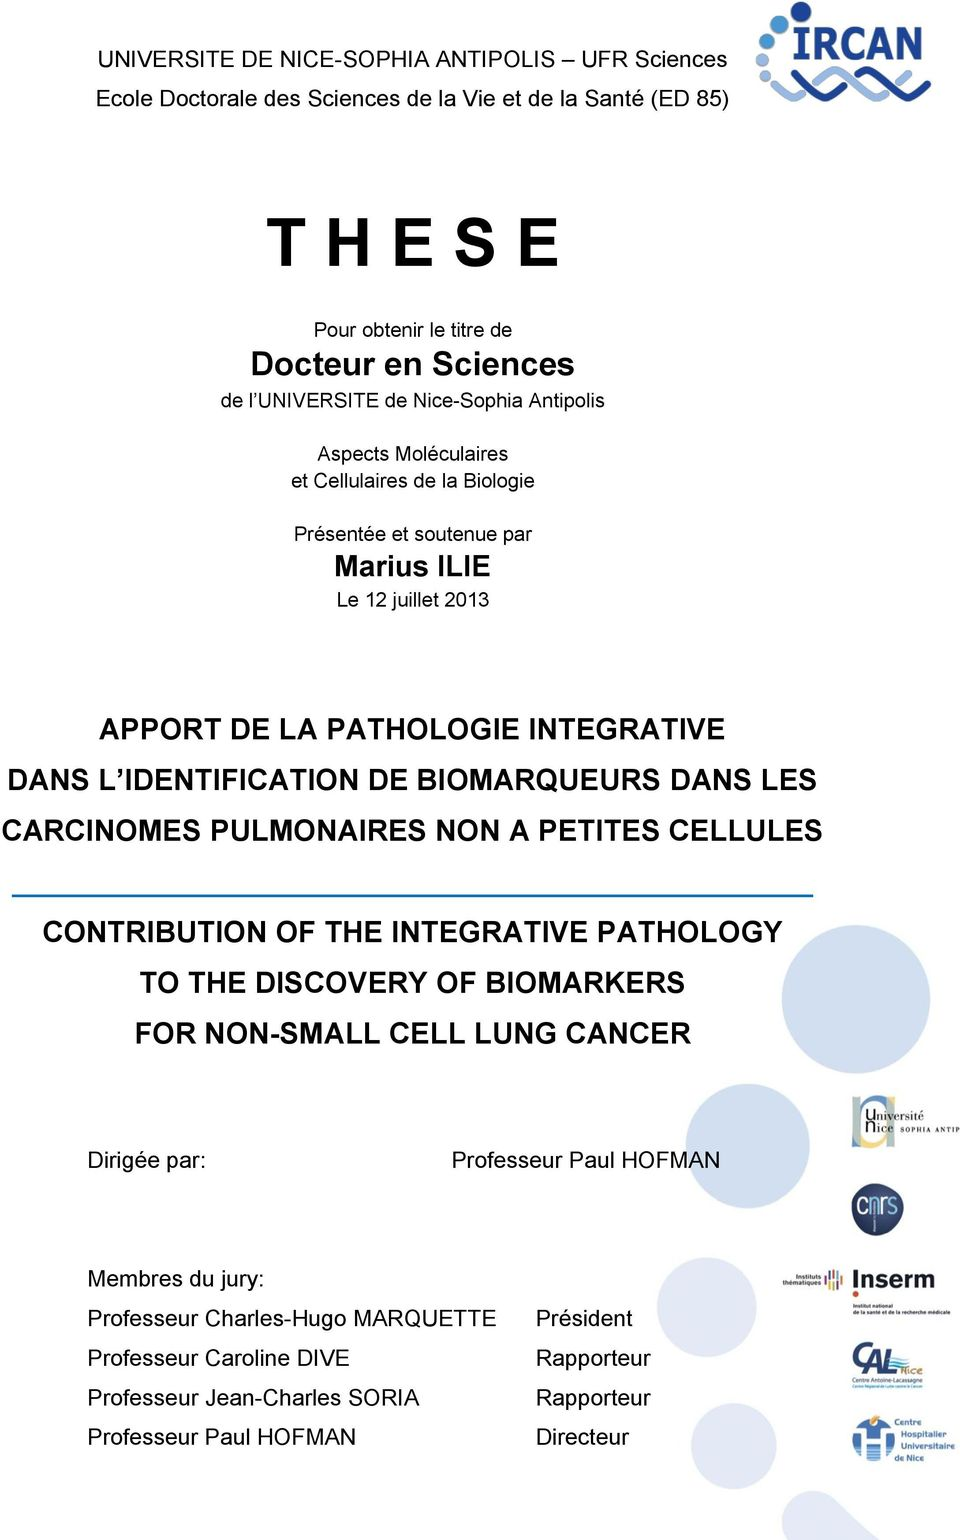 DE BIOMARQUEURS DANS LES CARCINOMES PULMONAIRES NON A PETITES CELLULES CONTRIBUTION OF THE INTEGRATIVE PATHOLOGY TO THE DISCOVERY OF BIOMARKERS FOR NON-SMALL CELL LUNG CANCER Dirigée par: